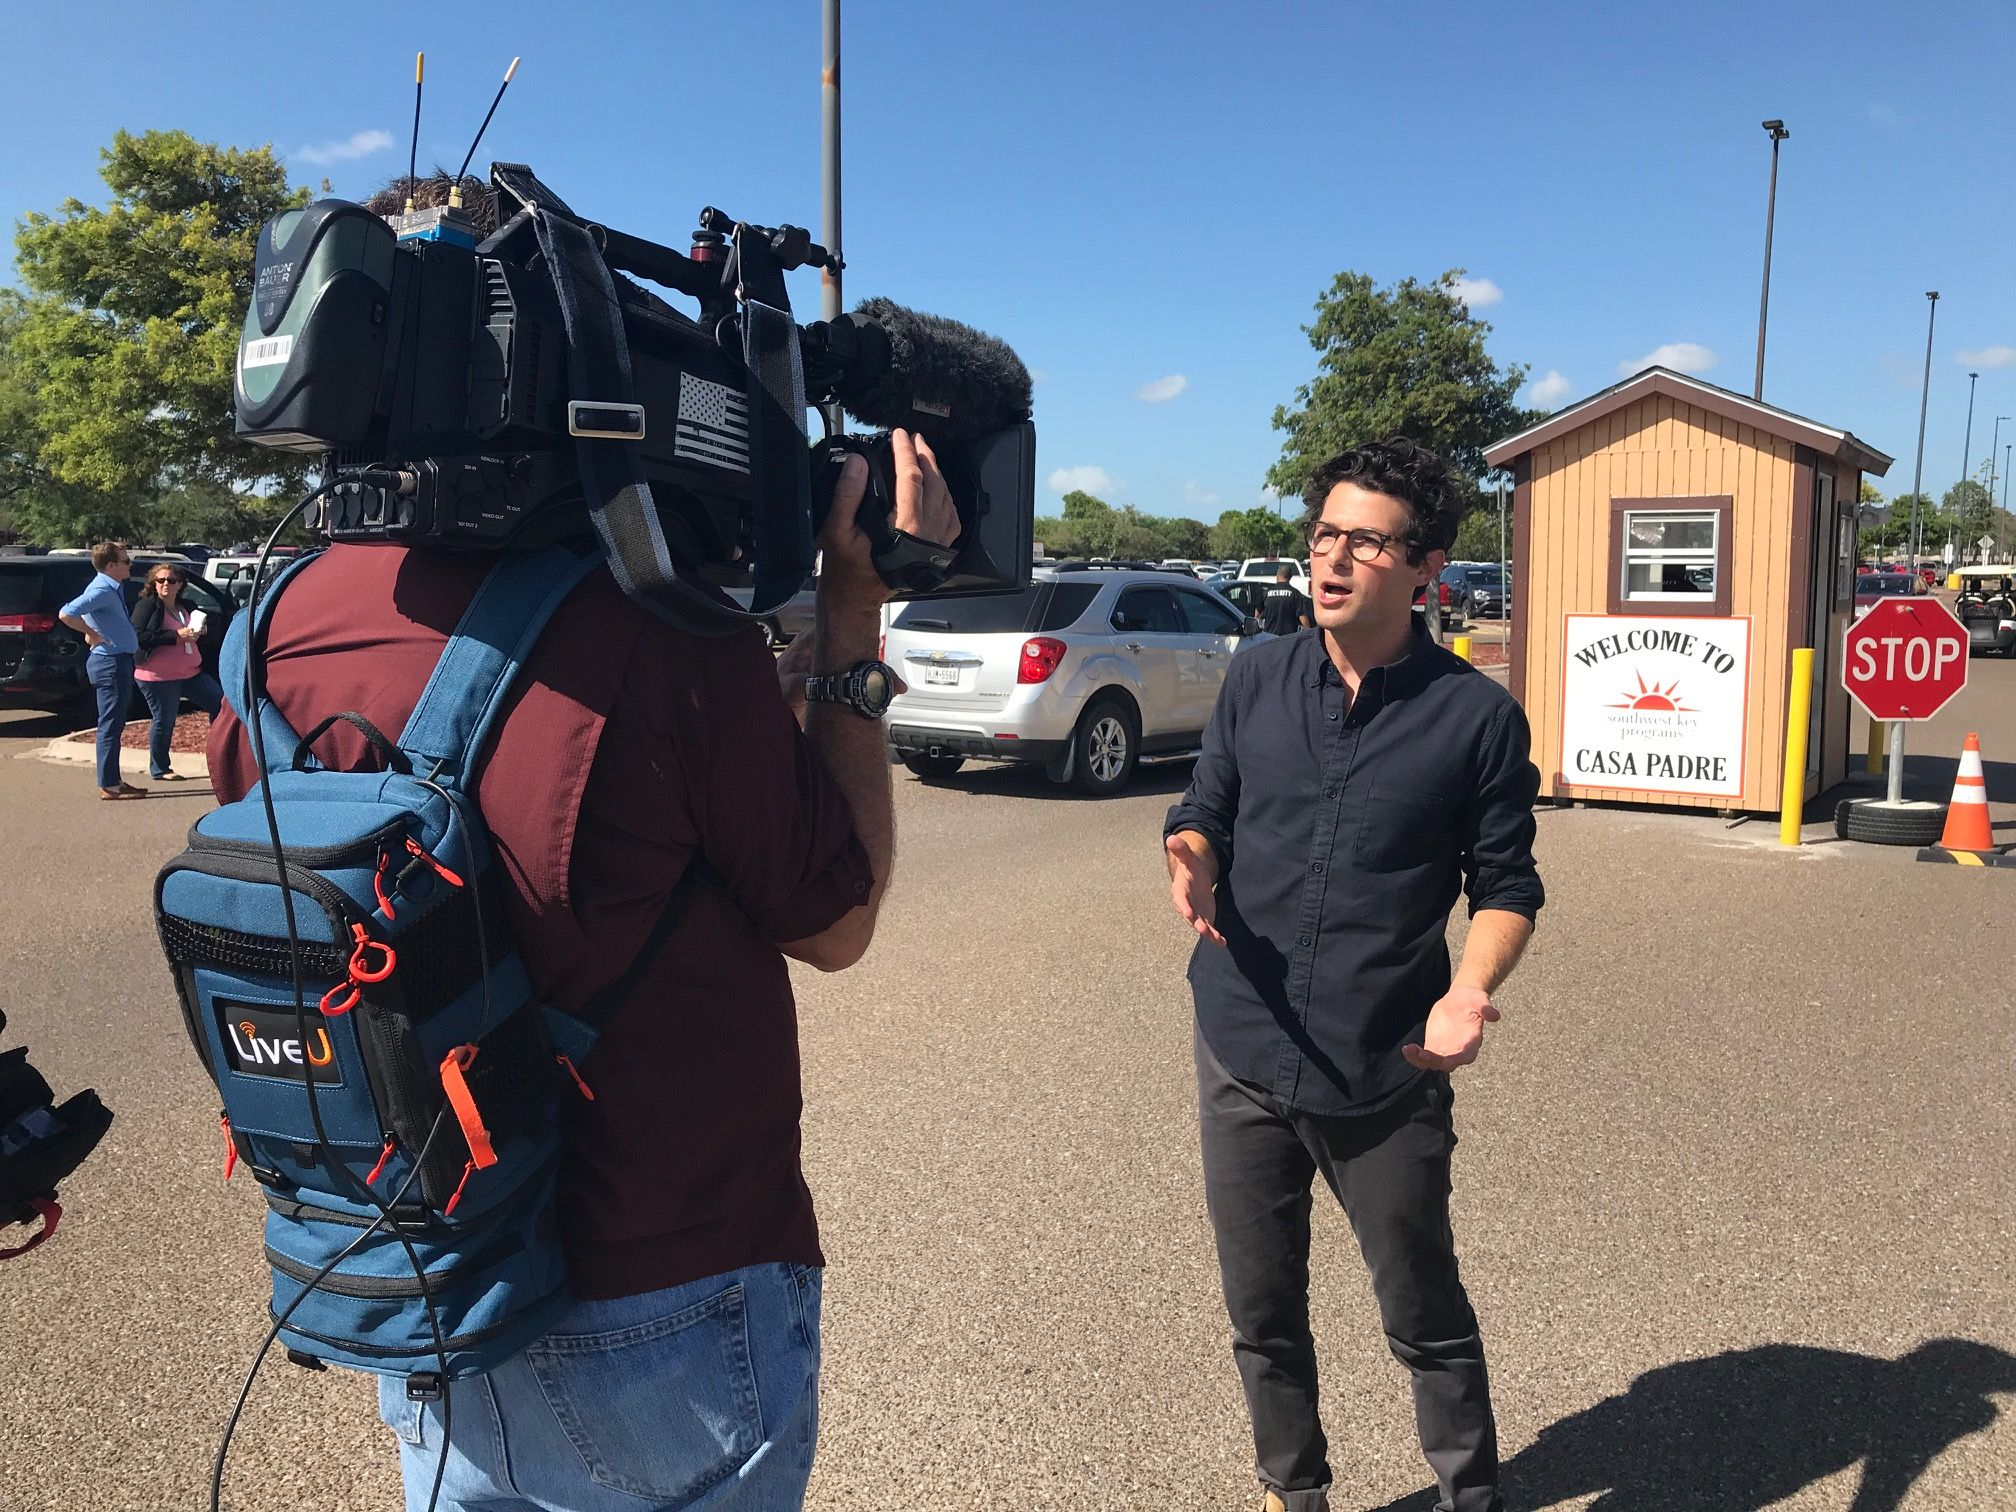 An Interview With Jacob Soboroff, the Reporter Who Went Inside the Texas Walmart Housing Immigrant Children